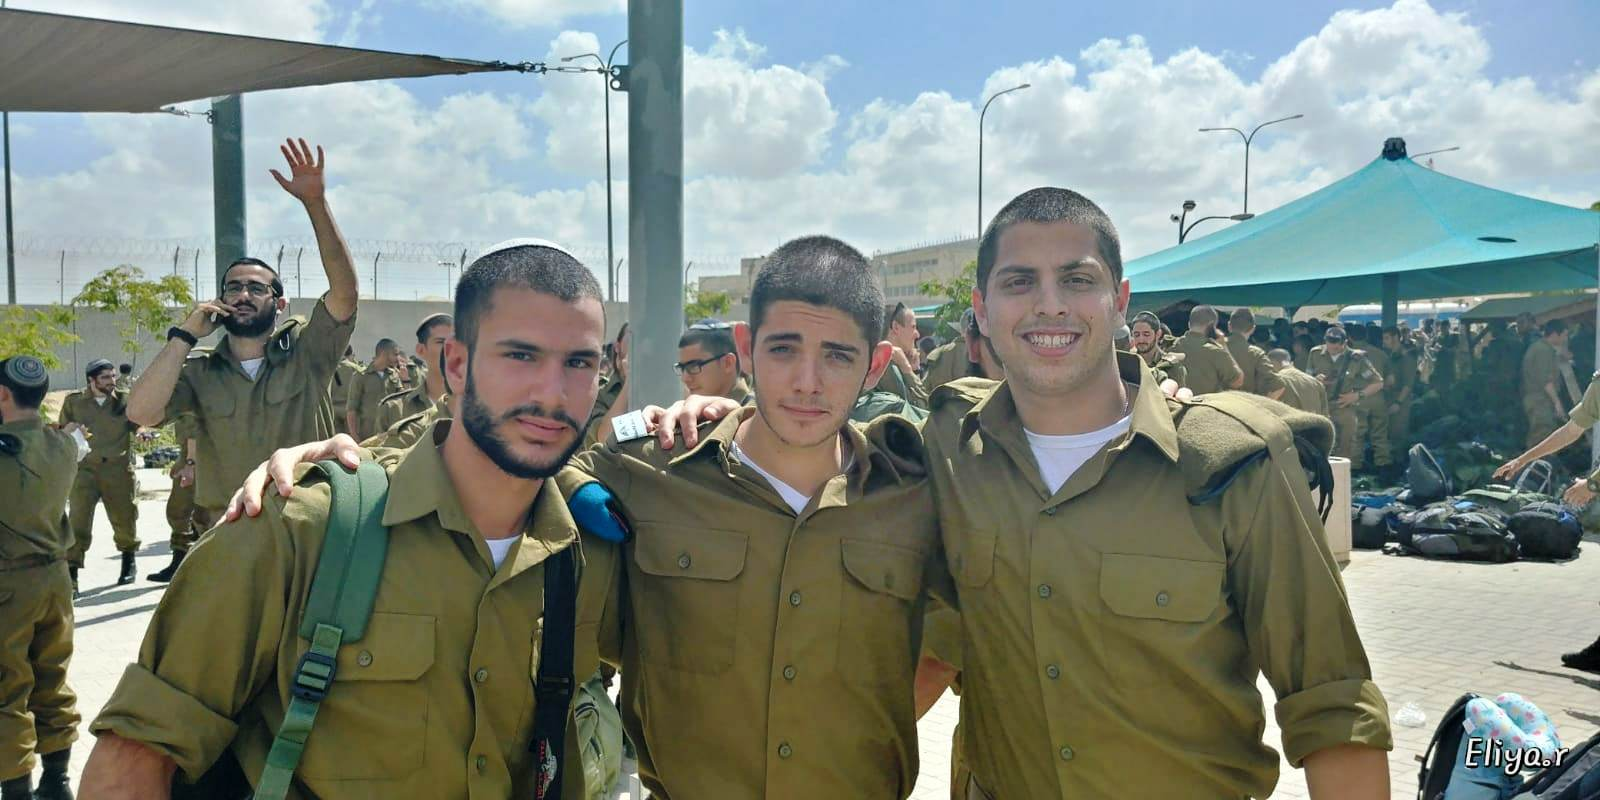 Alumni of Neveh Shmuel in the IDF